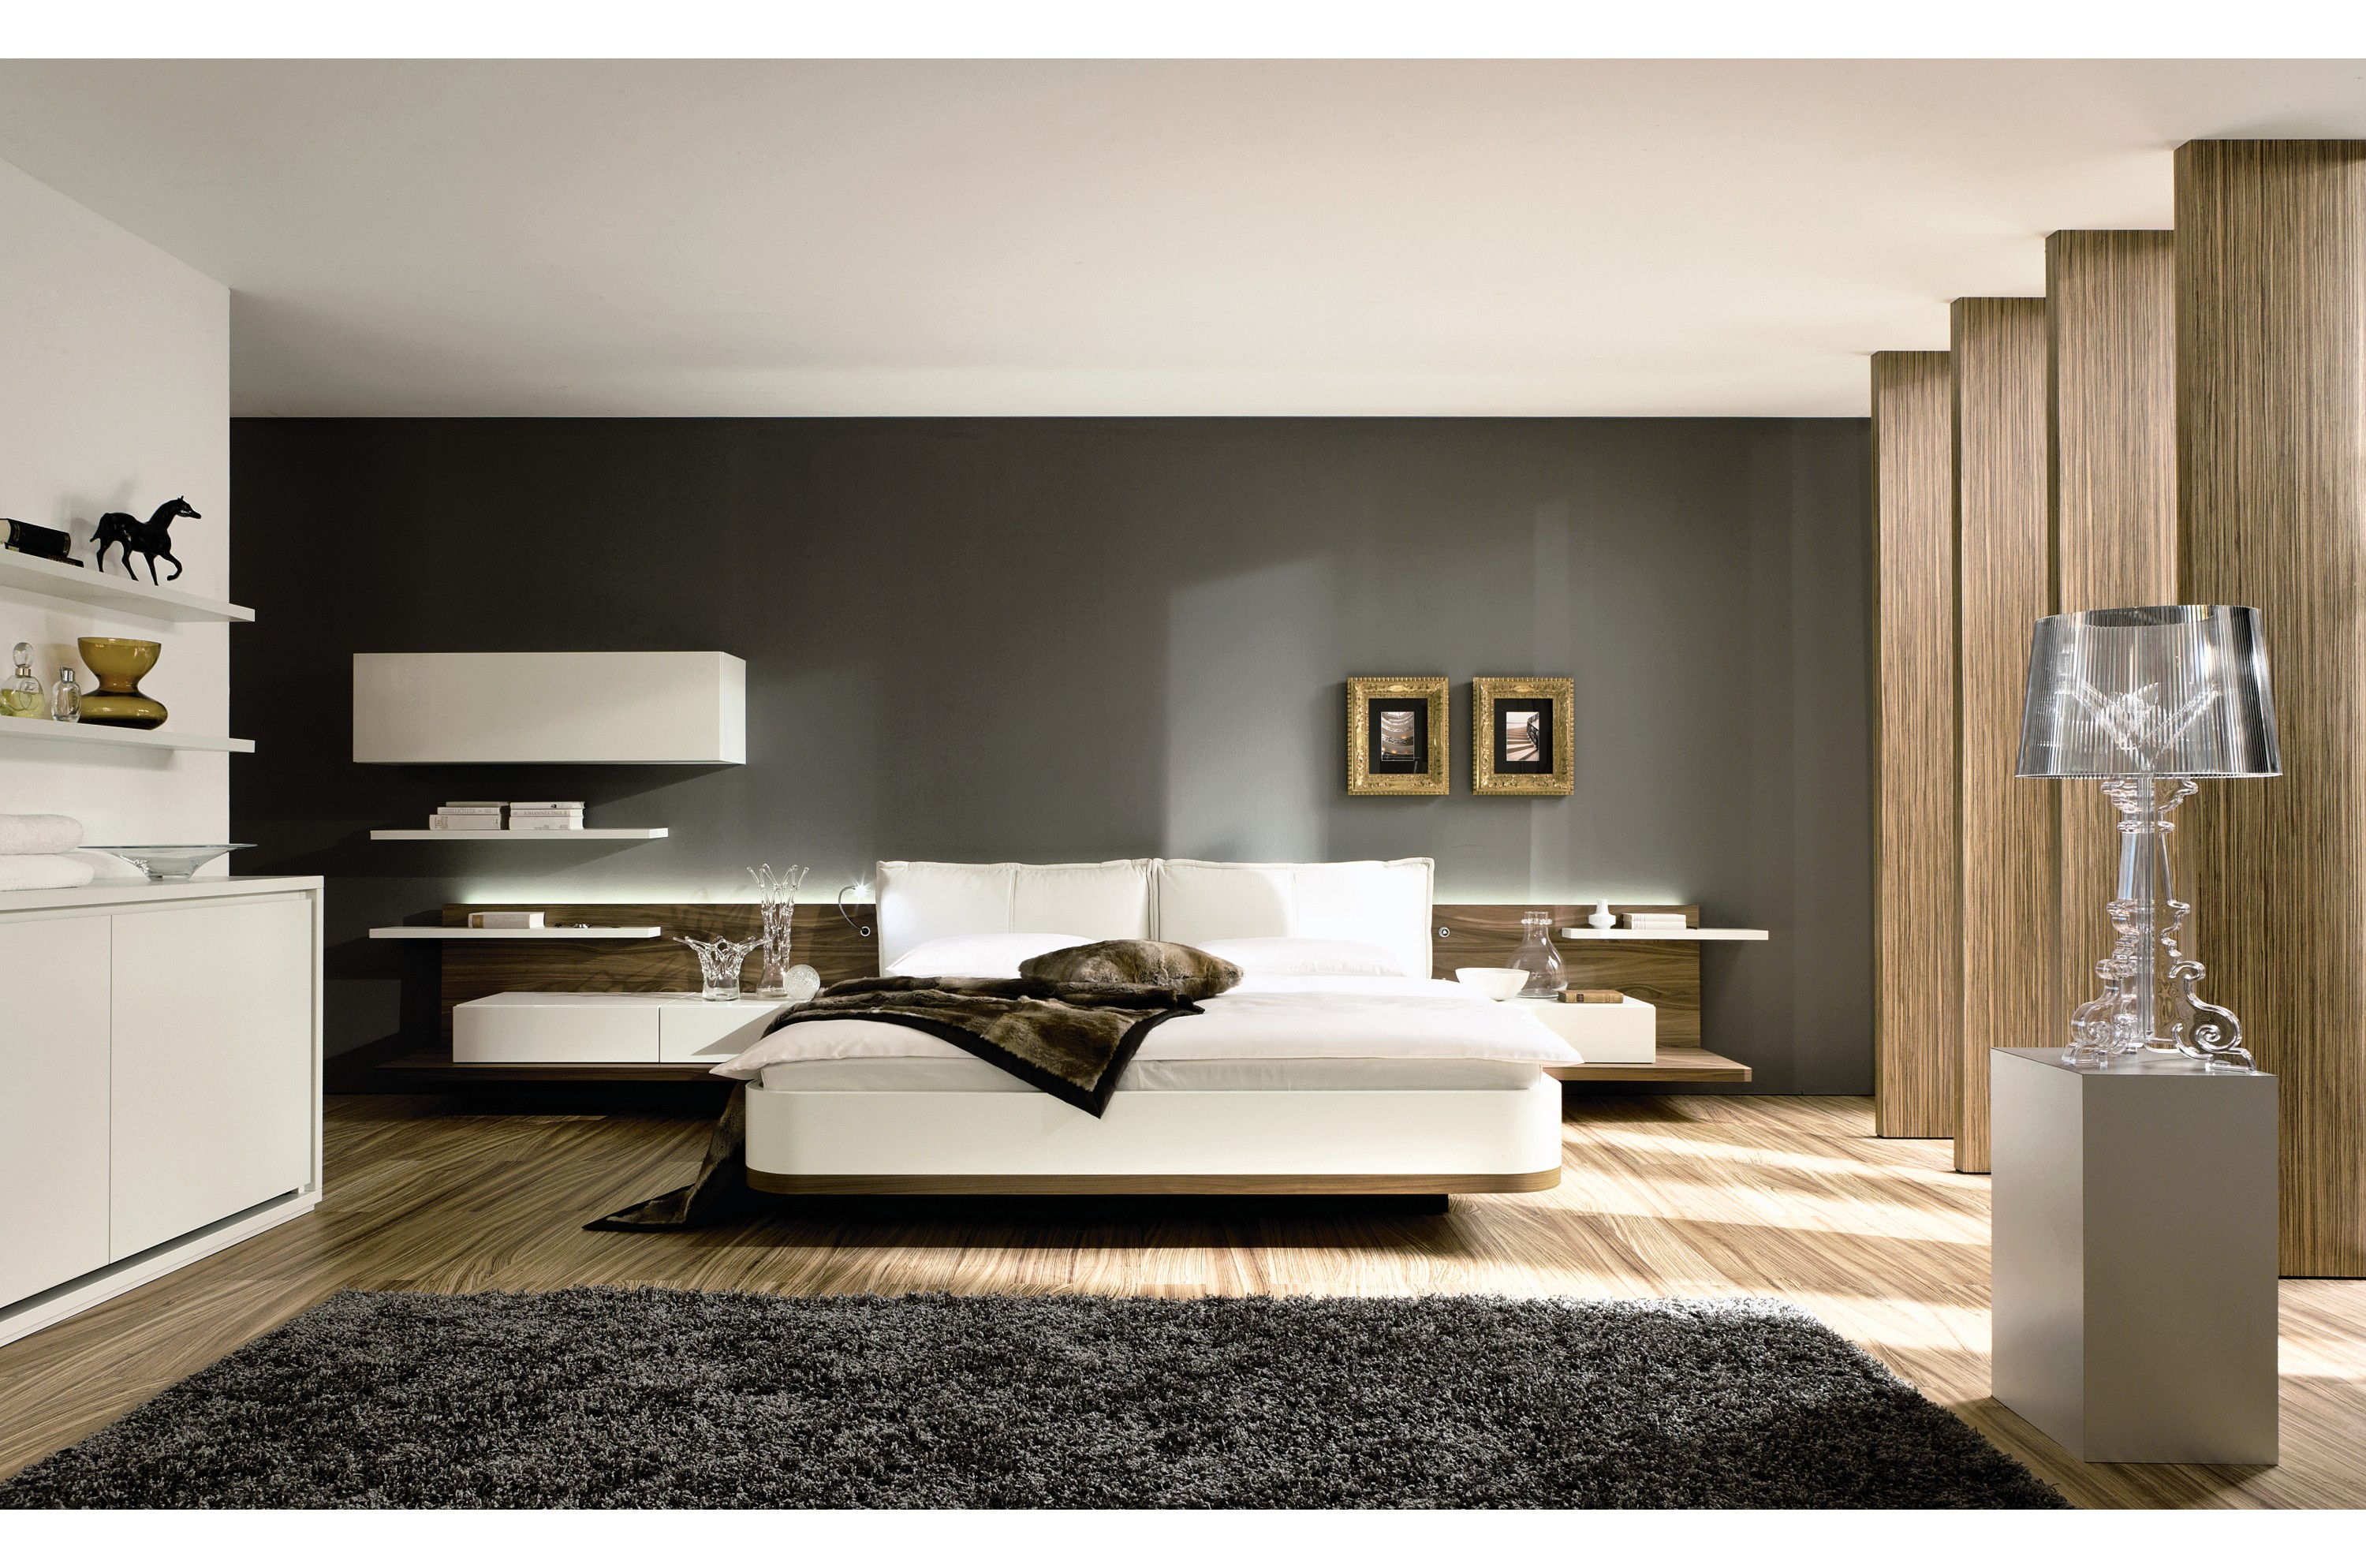 Interior Design For Bedroom Modern Bedroom Innovation Bedroom Ideas Interior Design